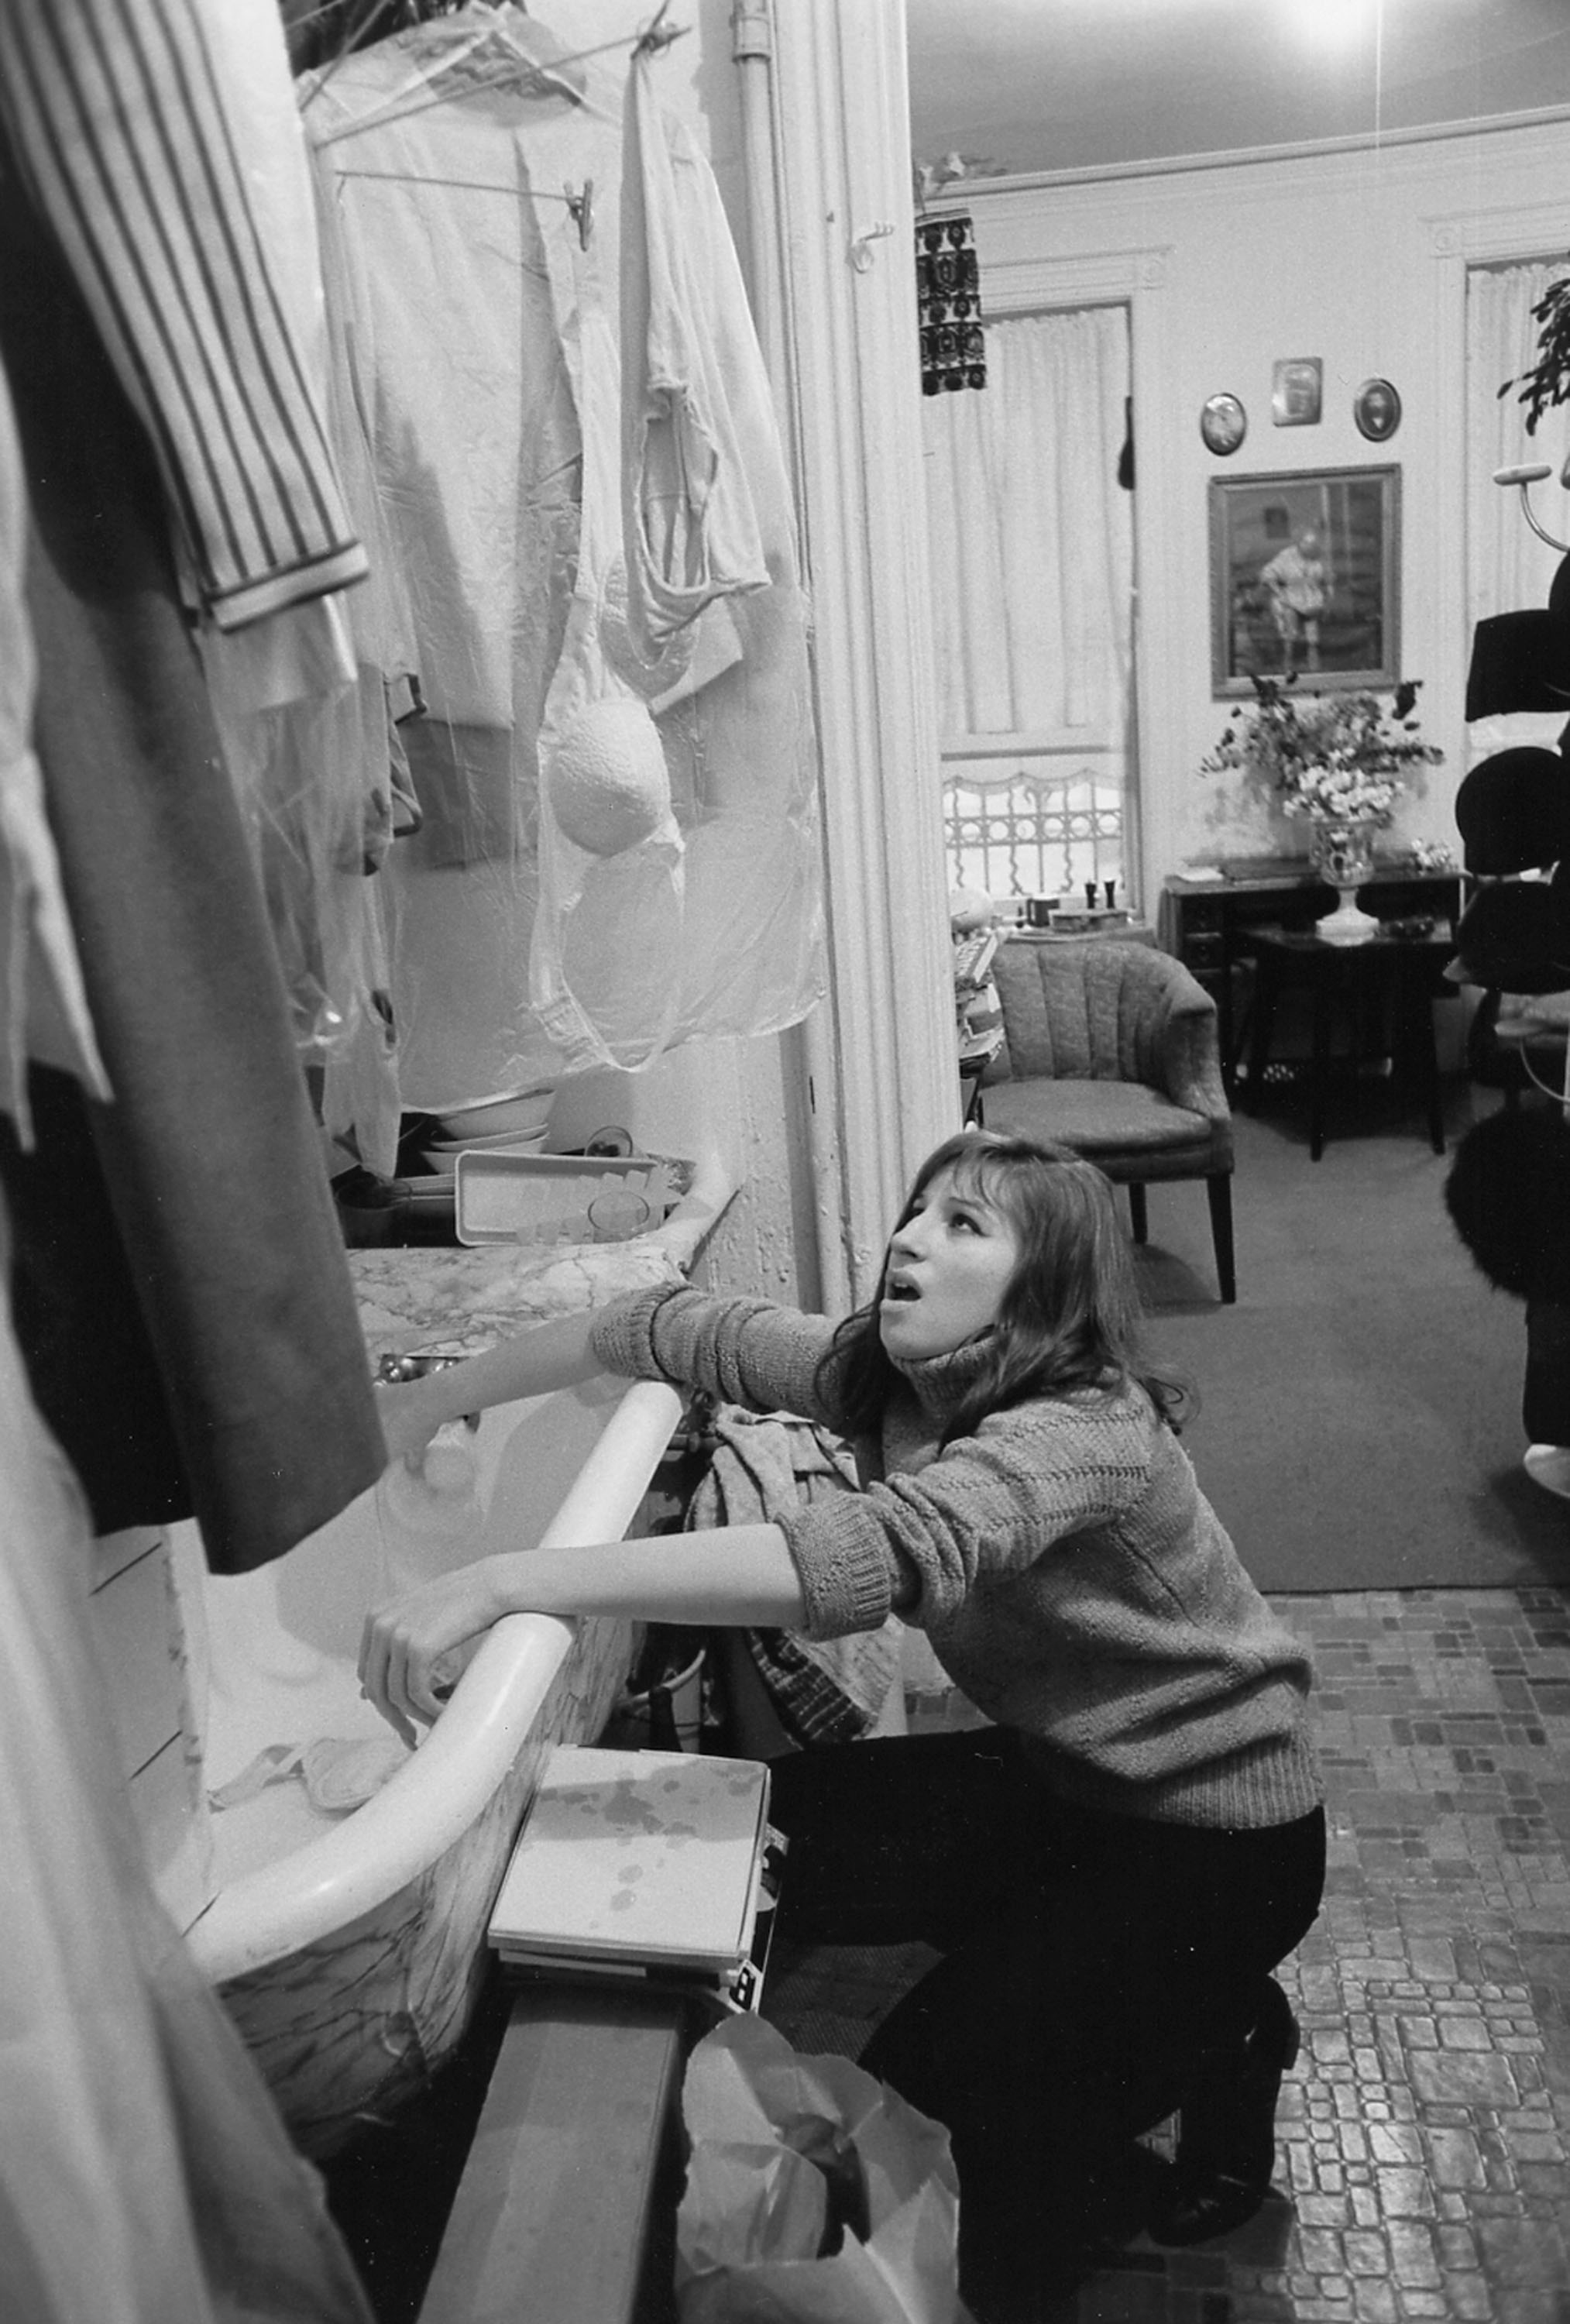 Streisand in the kitchen of her New York City apartment, 1964. The bathtub in the kitchen was standard for that type of apartment.